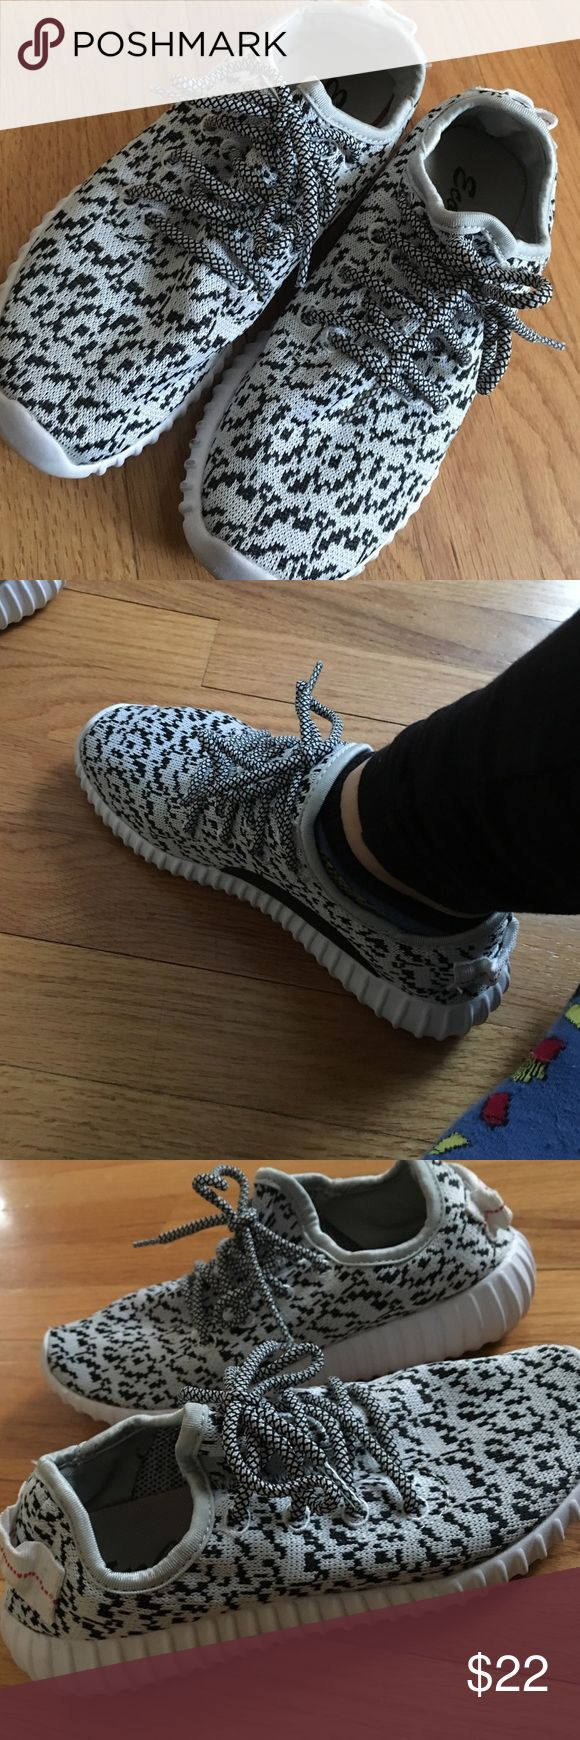 how to detect fake yeezys